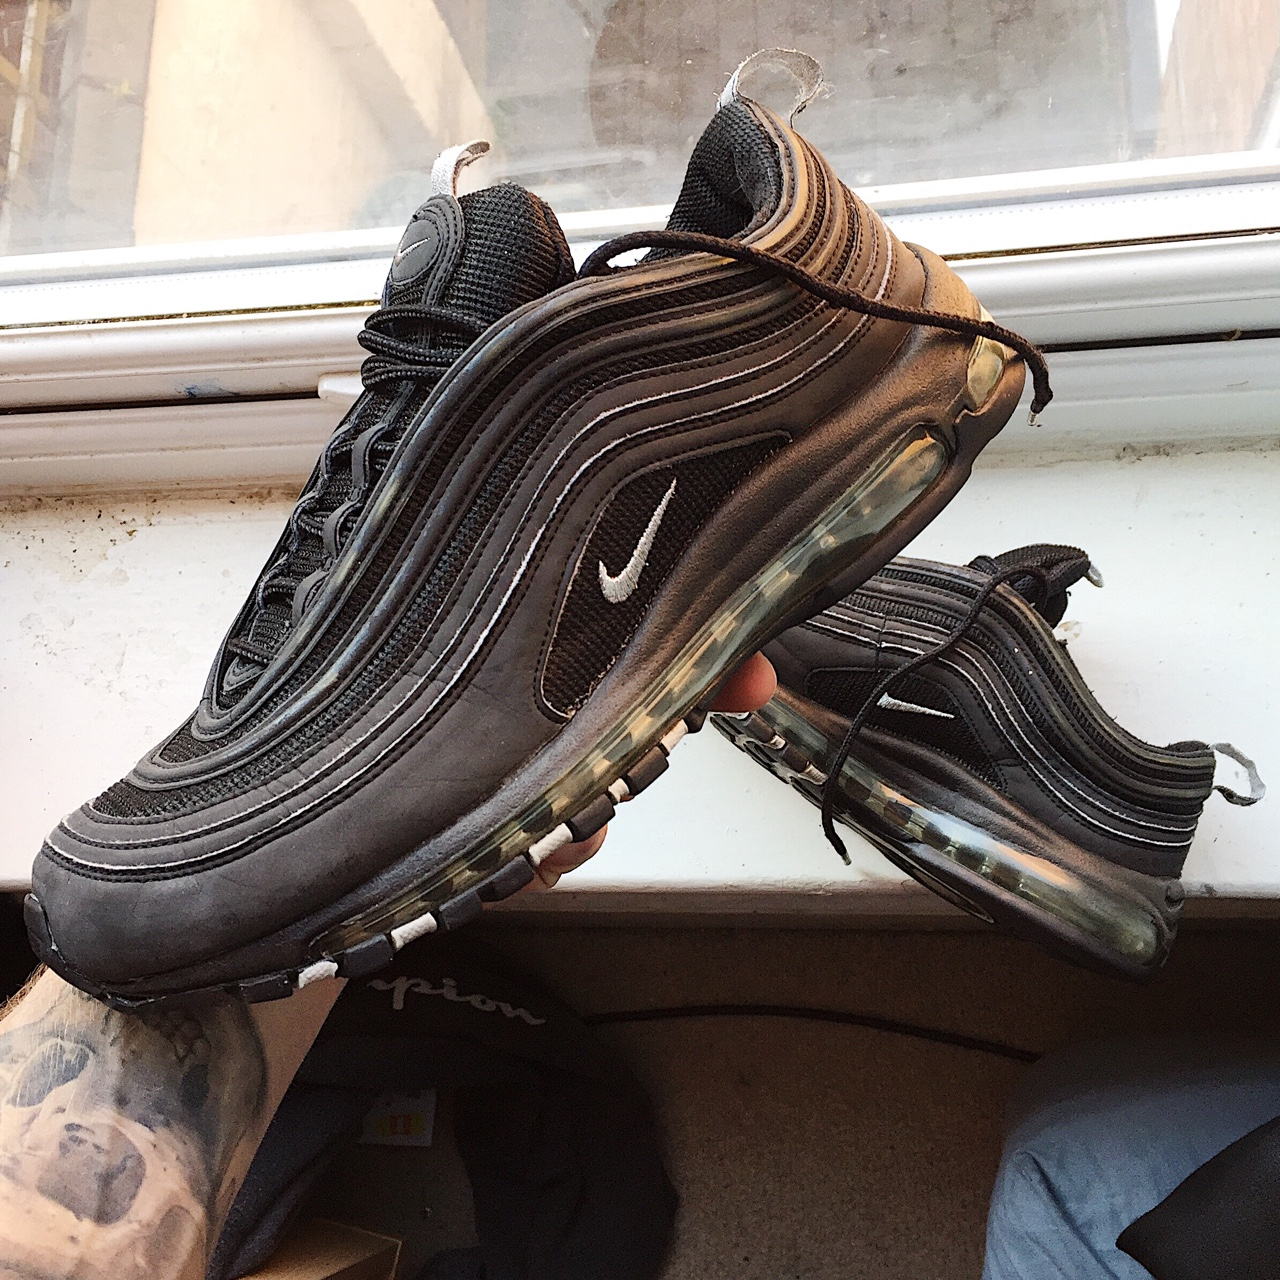 promo code 4c324 29215 Nike Air Max 97 Beaters • One of the bubbles had... - Depop